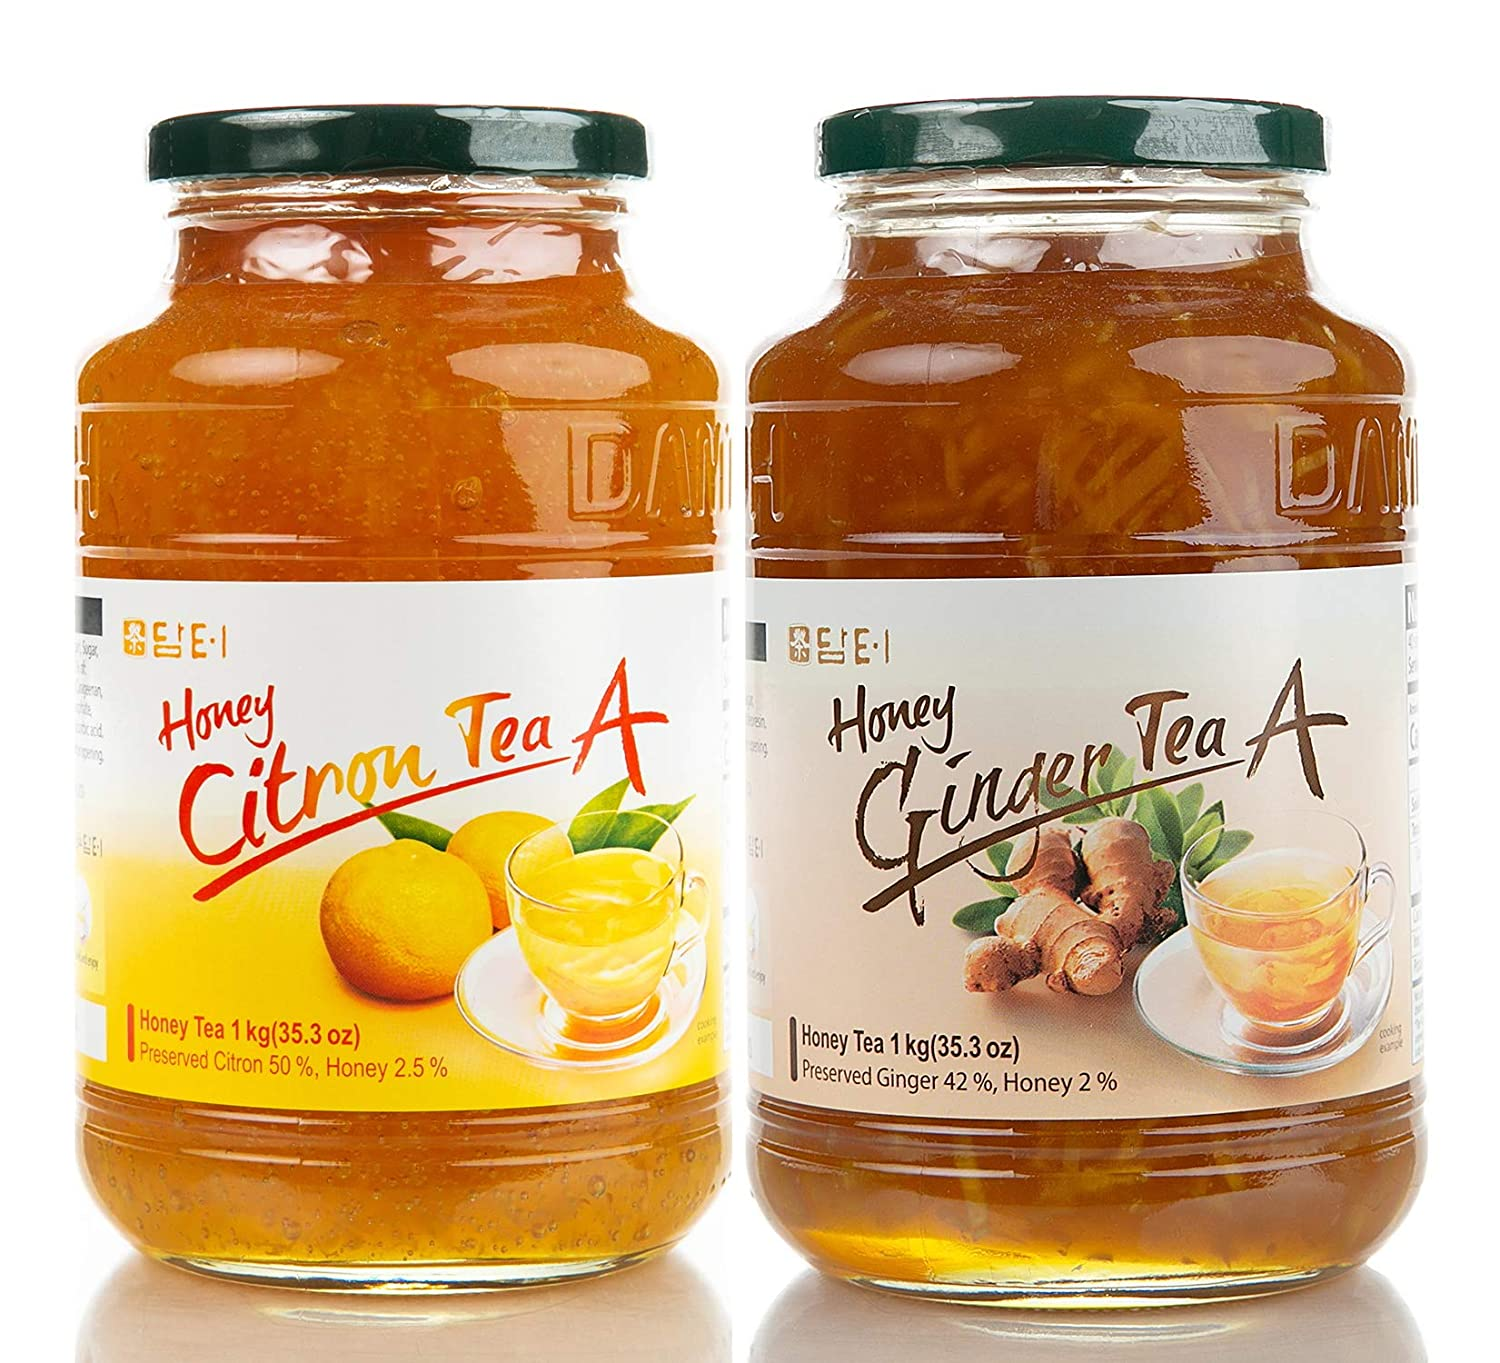 DAMTUH Korean Honey Tea A, Citron Tea with Honey + Ginger Tea with Honey 35 OZ, (1Kg) x 2 Bottles